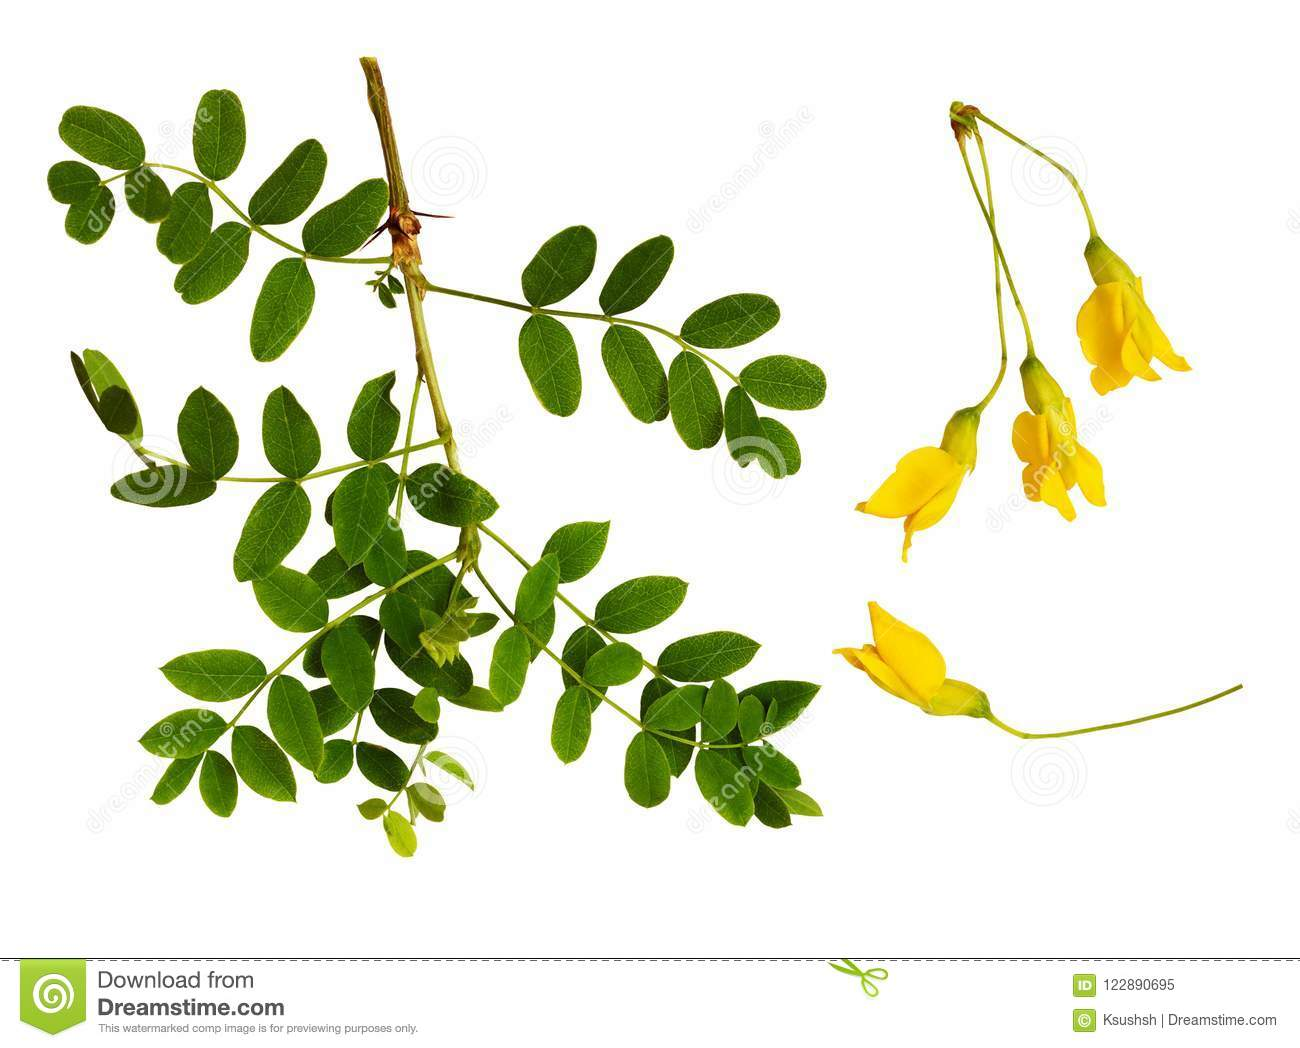 Set of fresh green leaves and yellow flowers of Siberian peashrub